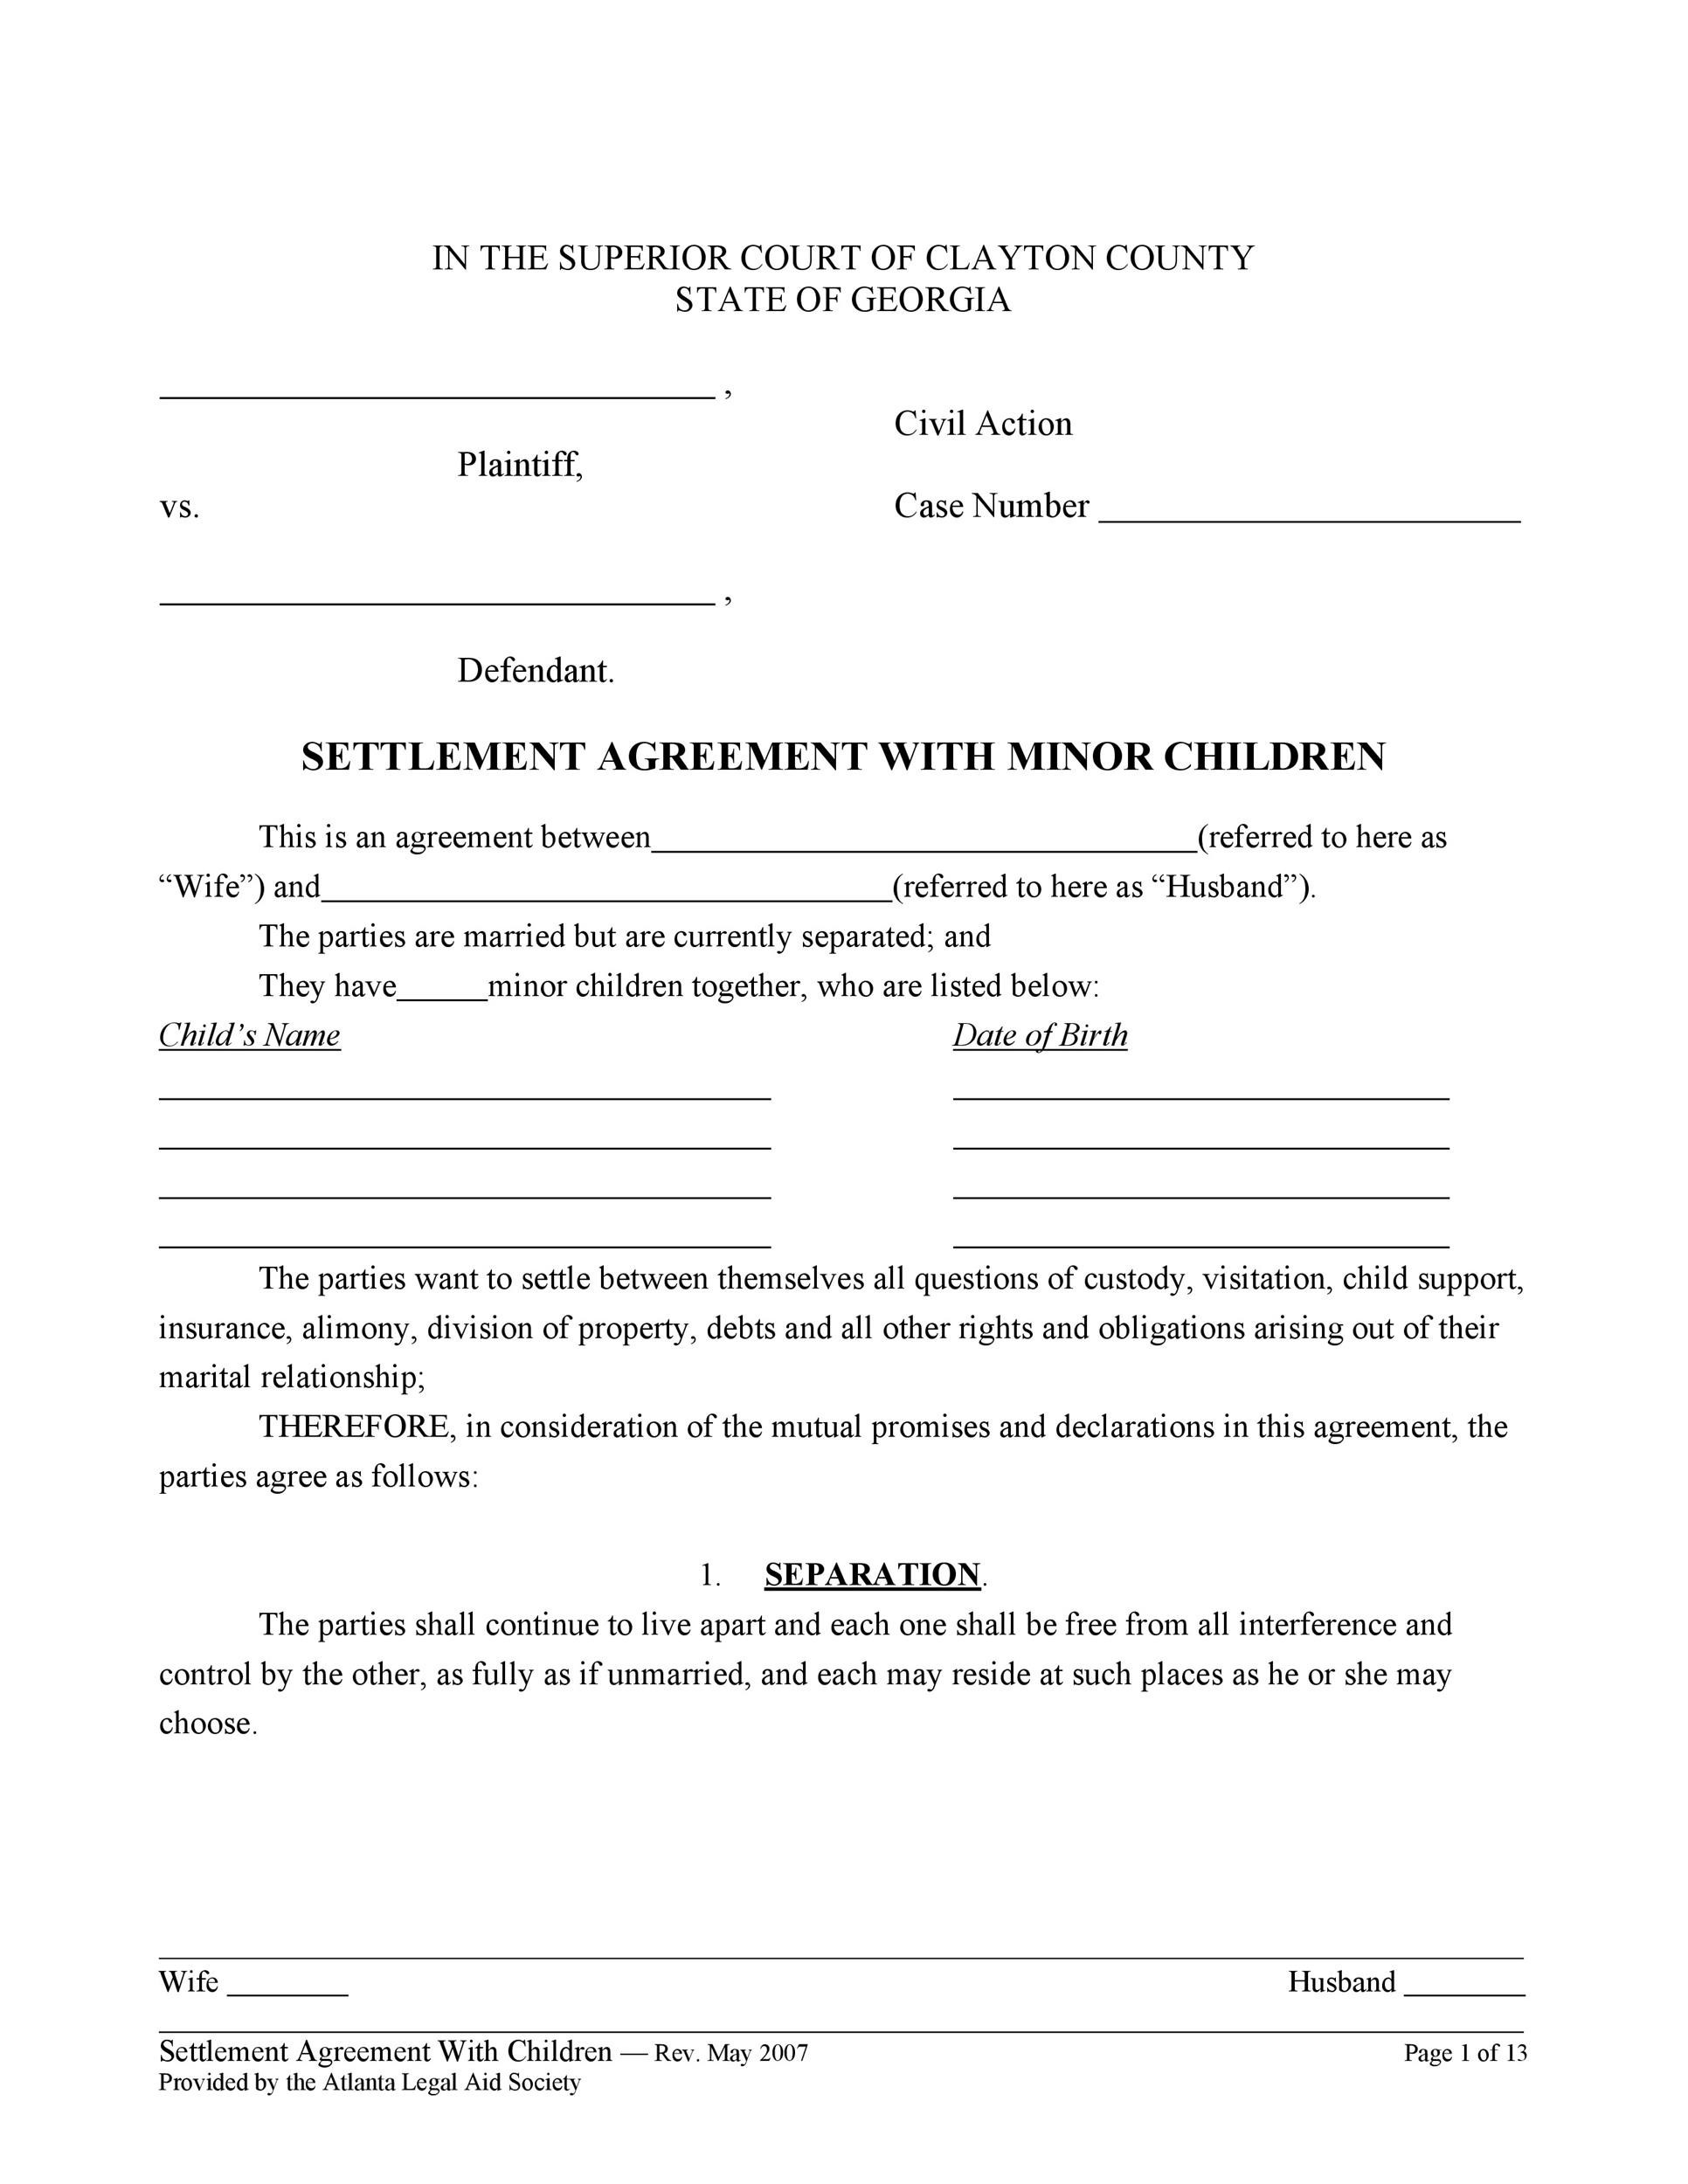 Free child support agreement 16